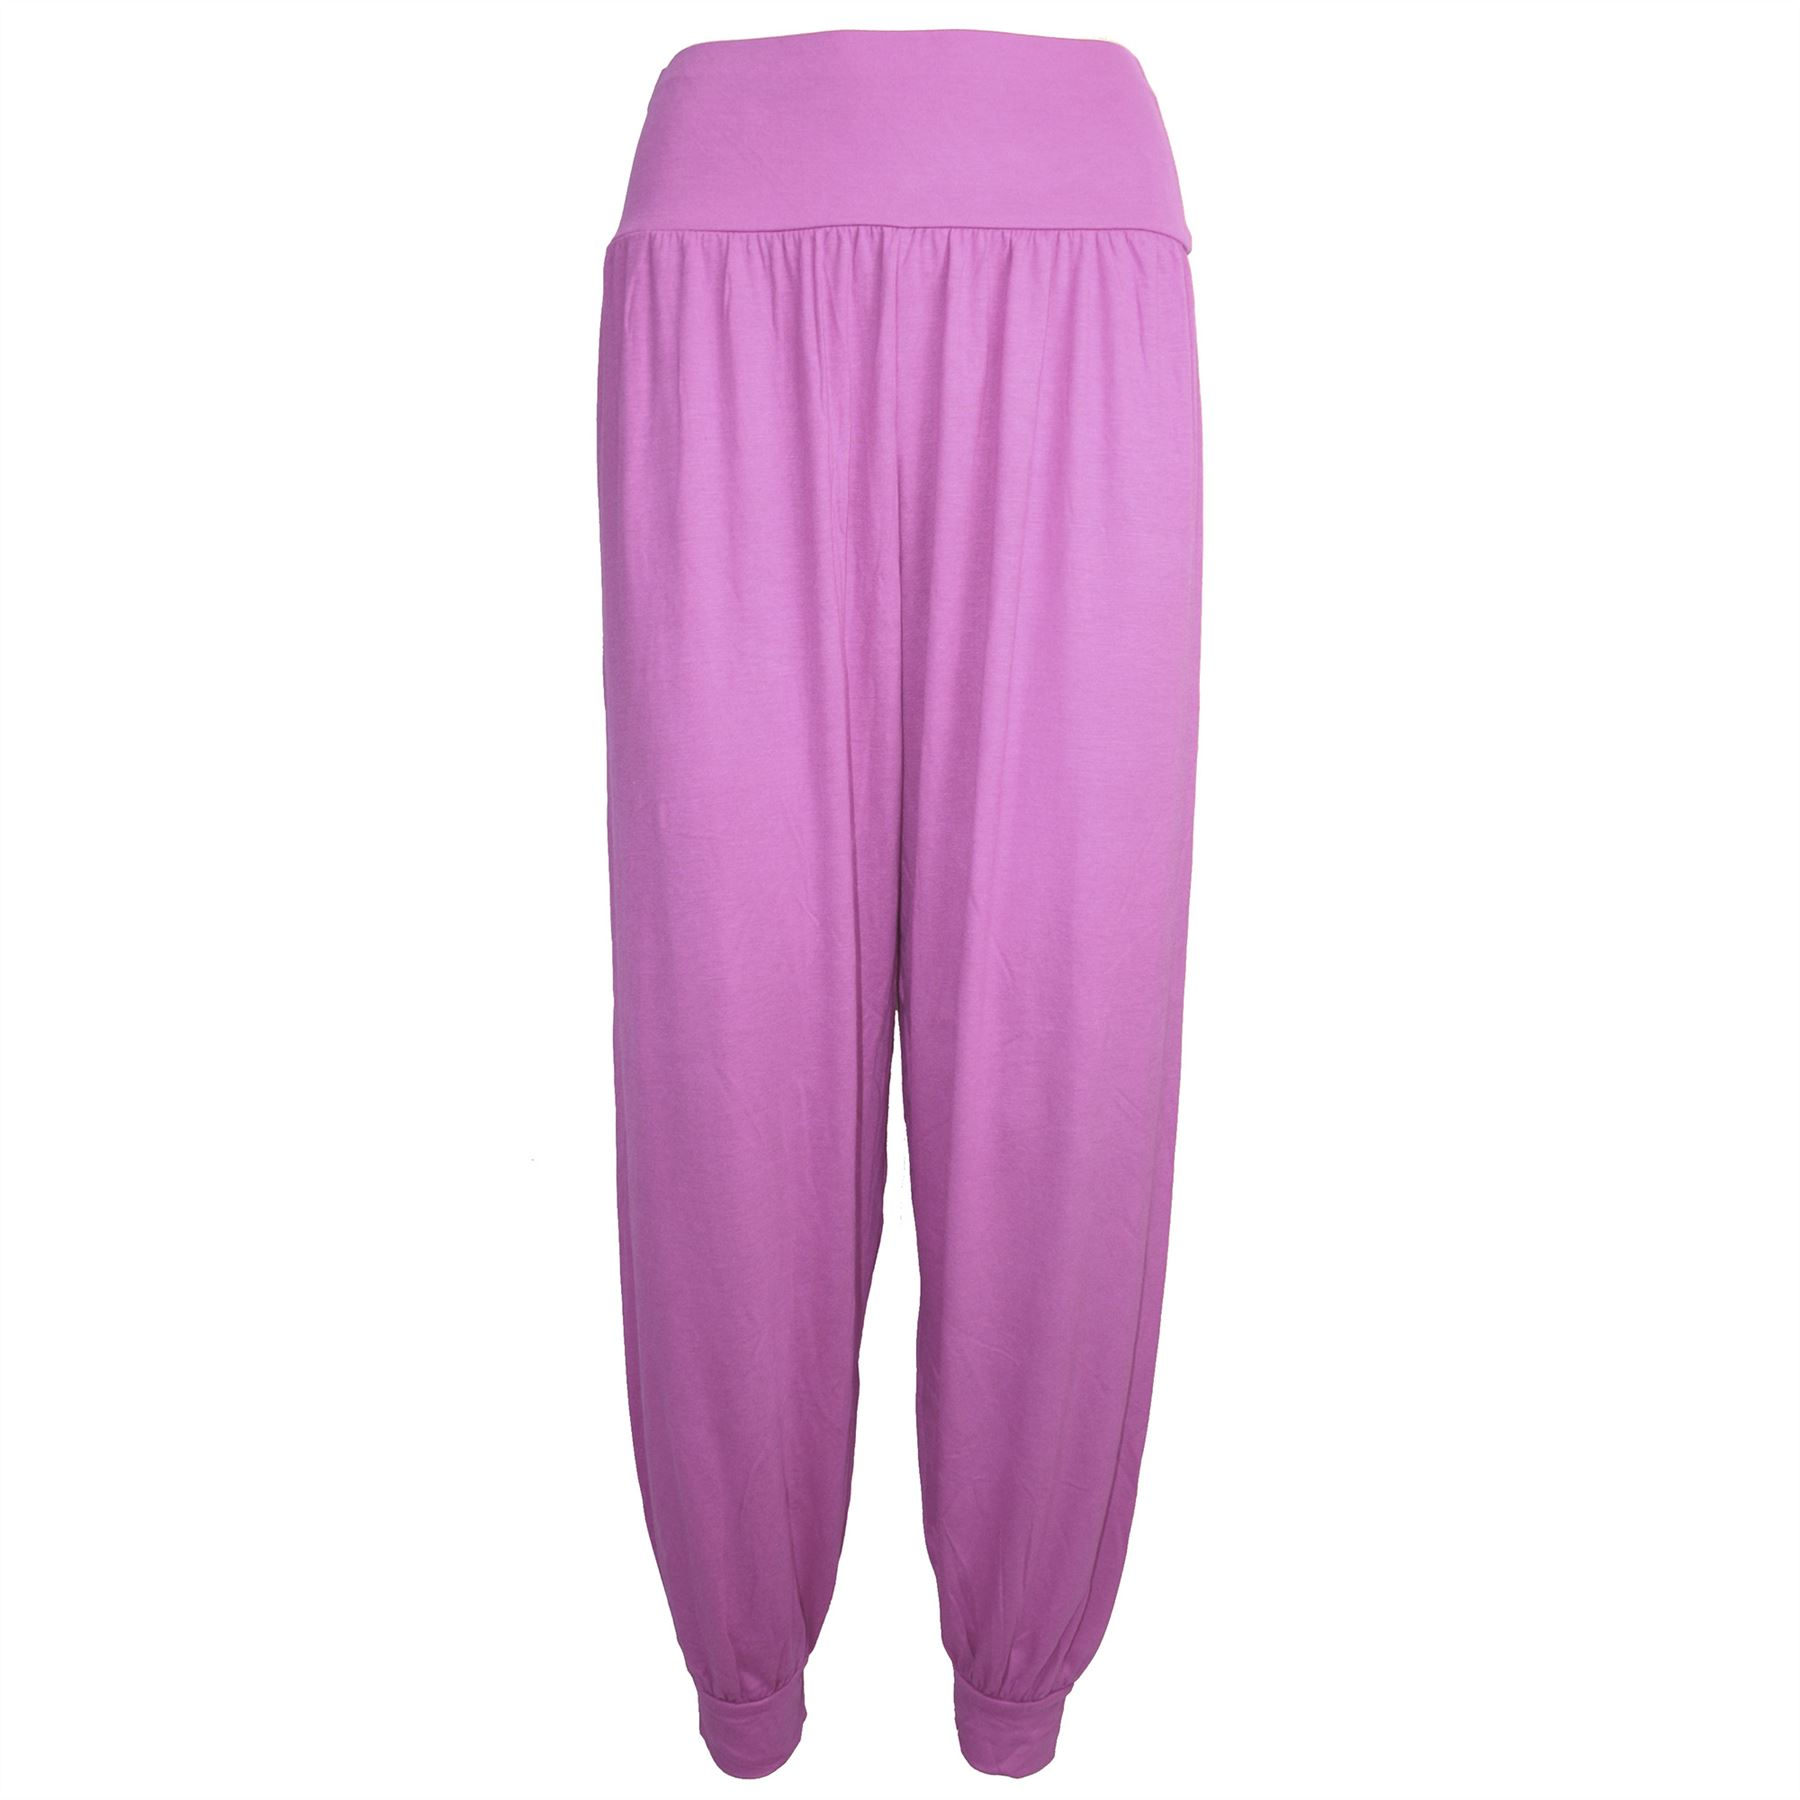 Buy PurpleHanger Women's Harem Baggy Pants Leggings Plus Size and other Casual at shopnow-vjpmehag.cf Our wide selection is elegible for free shipping and free returns.2/5(2).